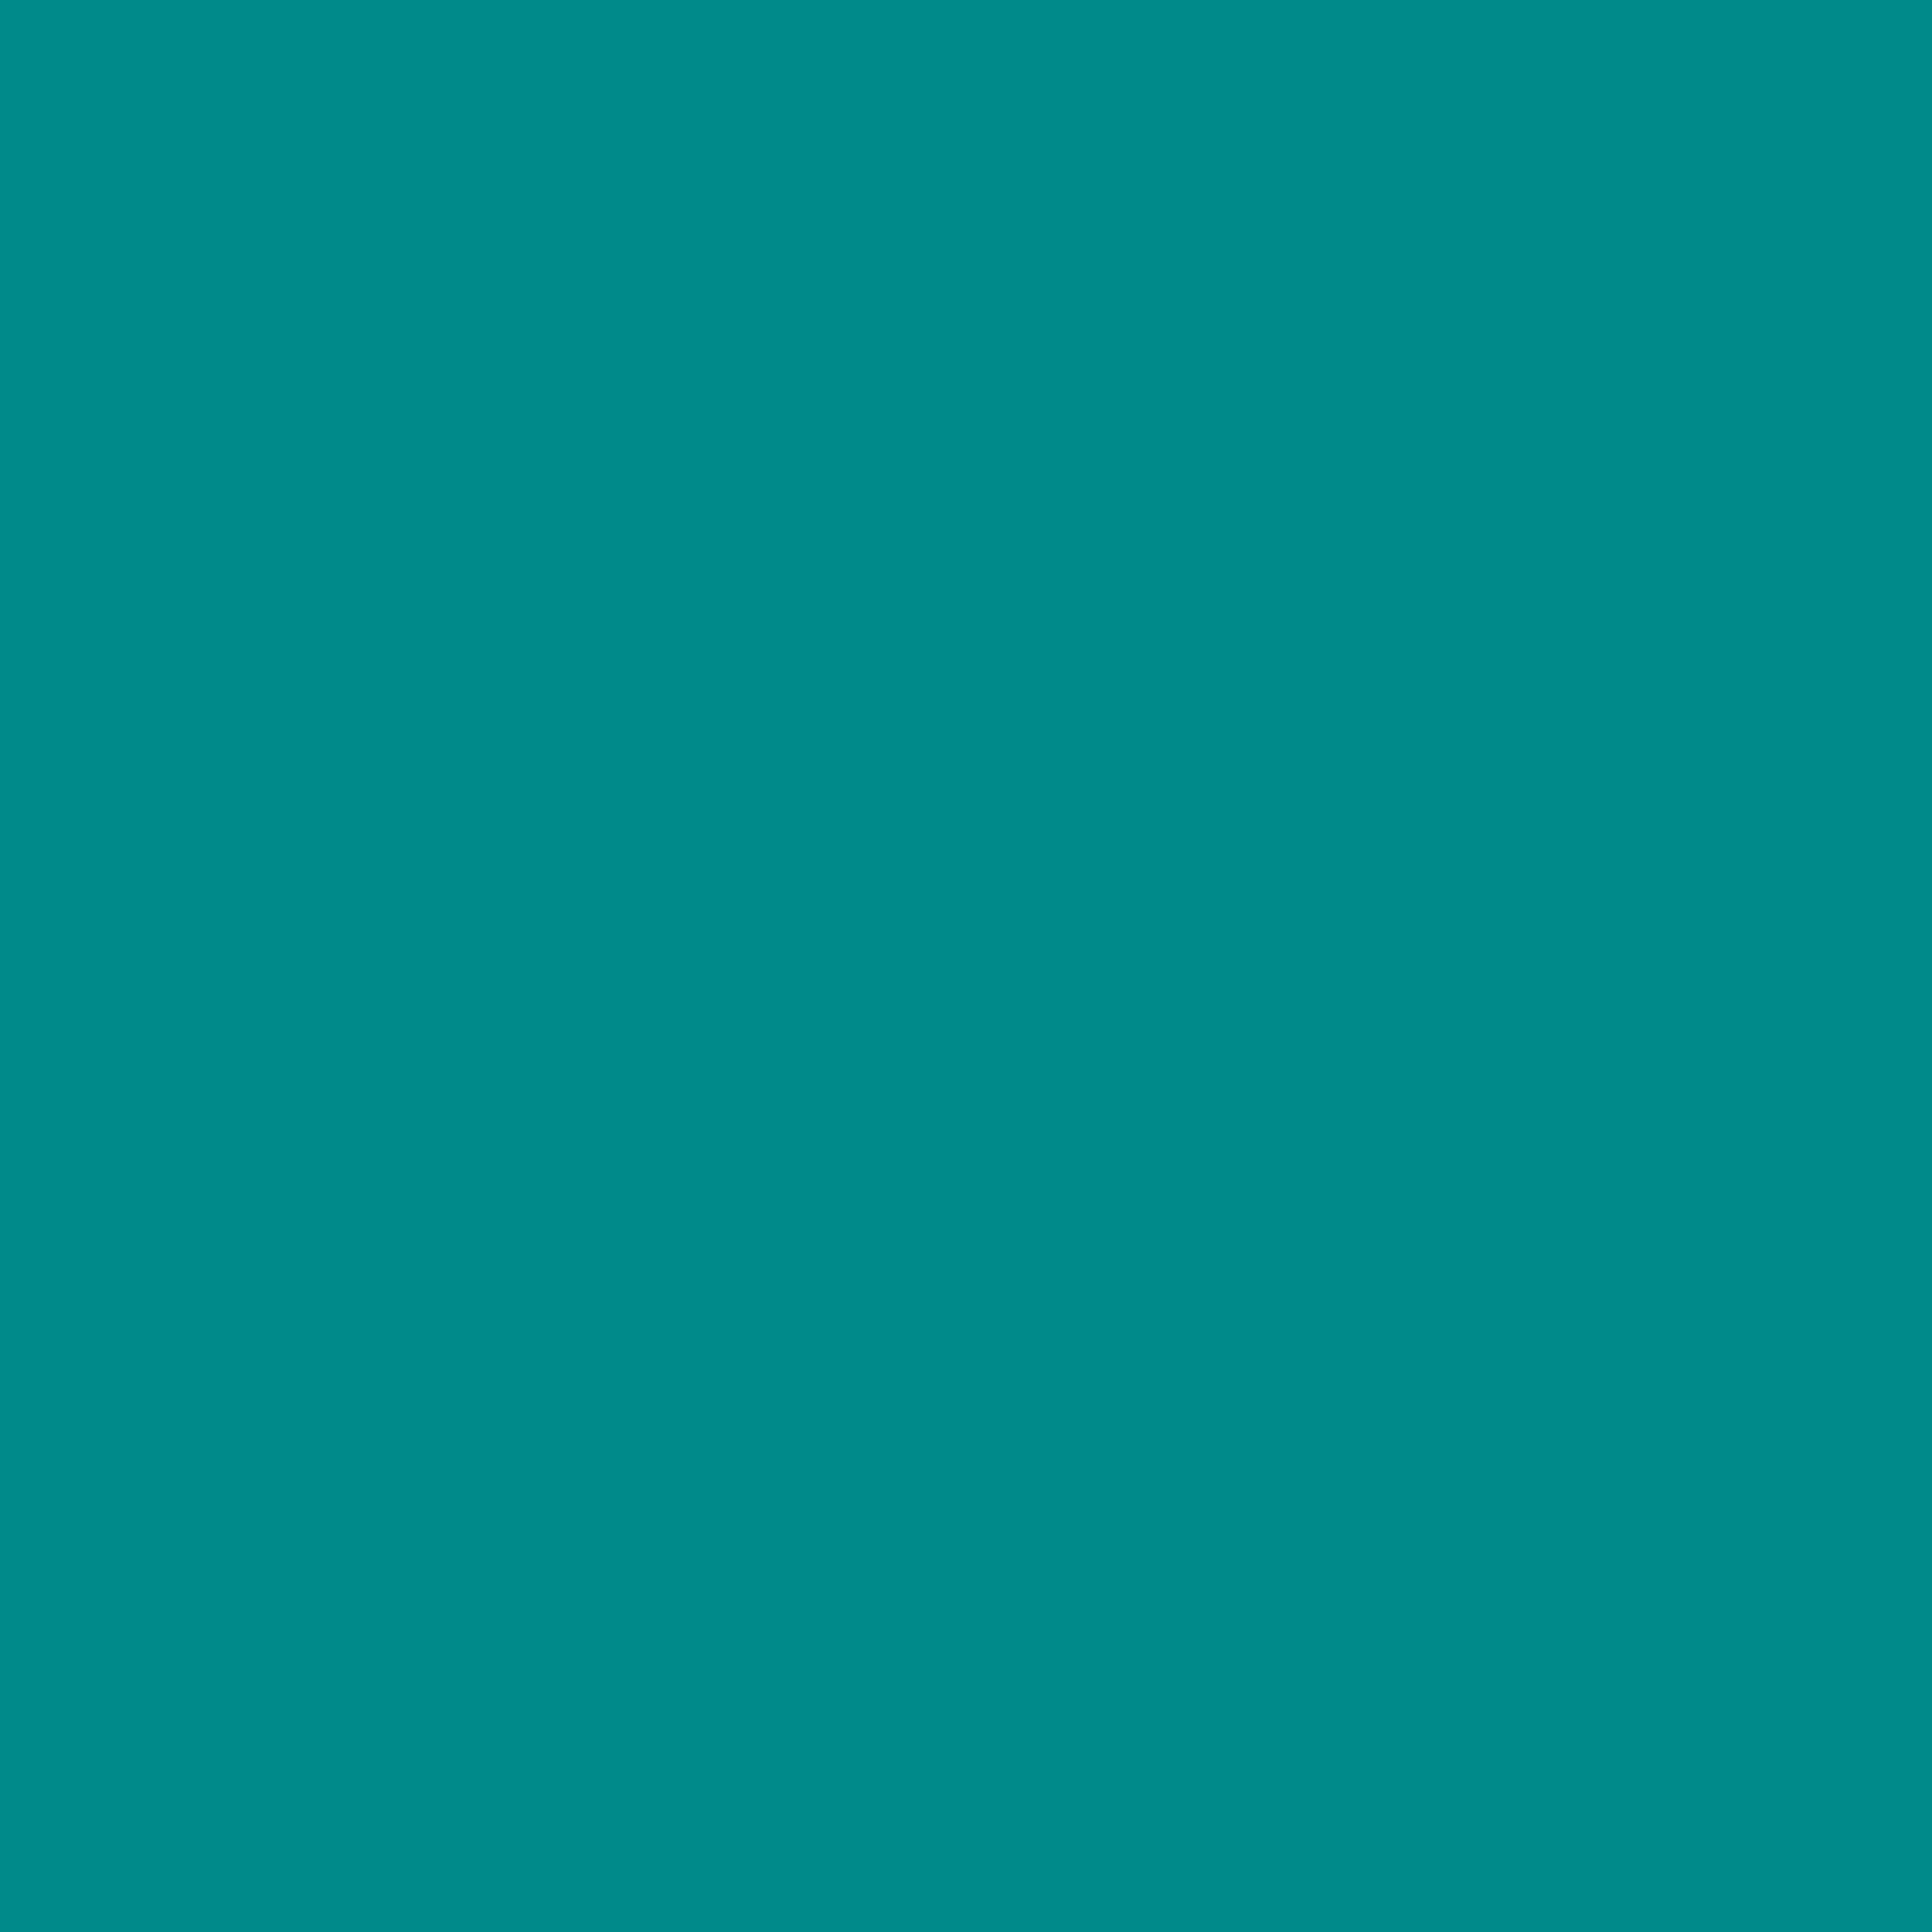 2048x2048 Dark Cyan Solid Color Background